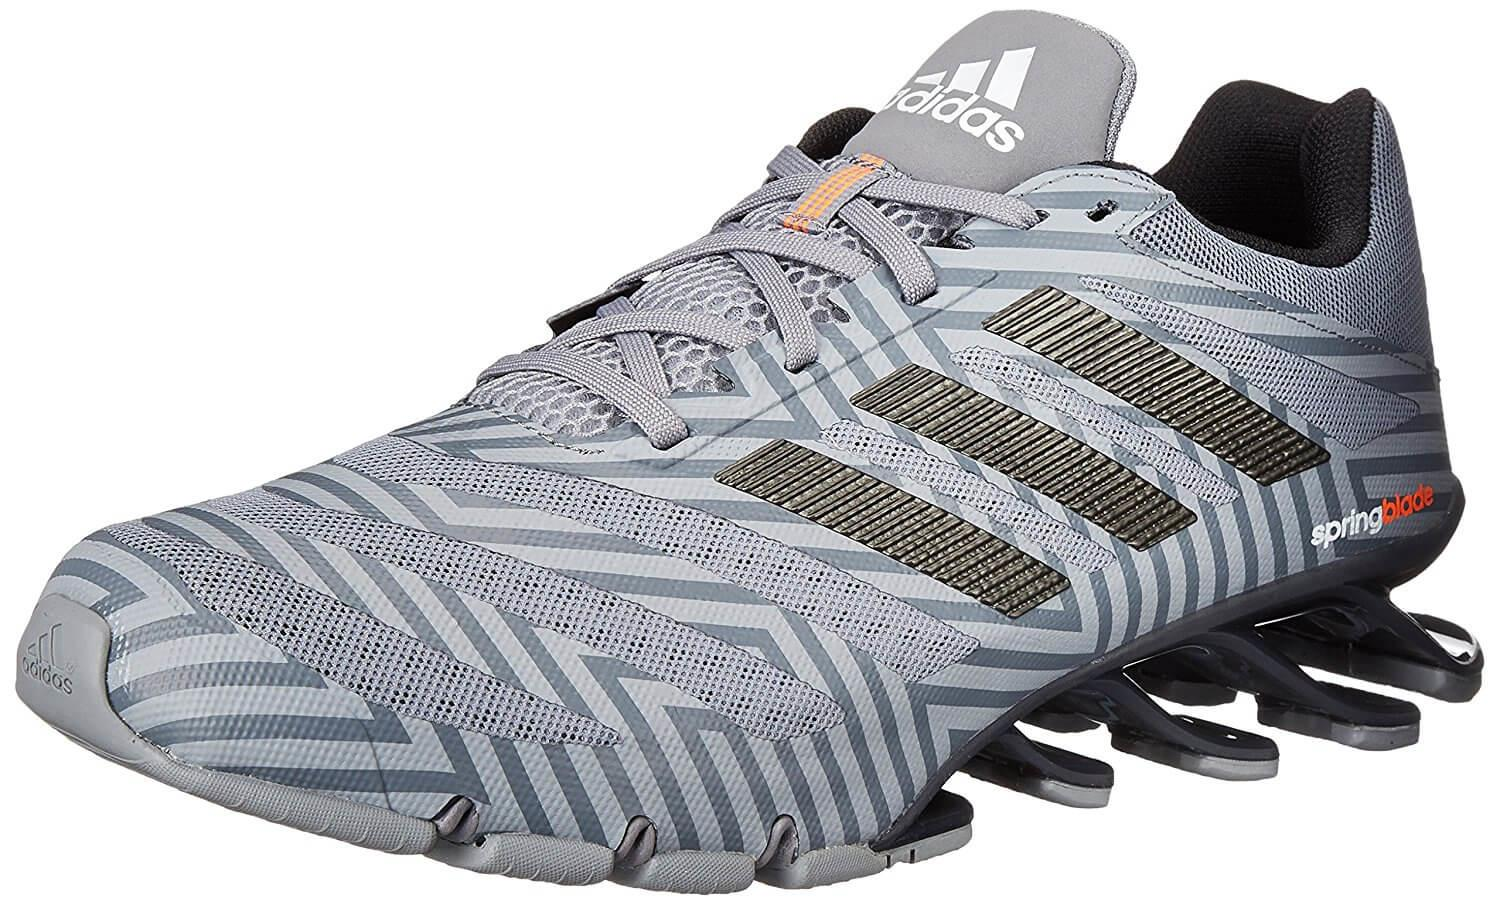 Adidas Springblade Ignite - To Buy or Not in Mar 2019  e58bdf00e